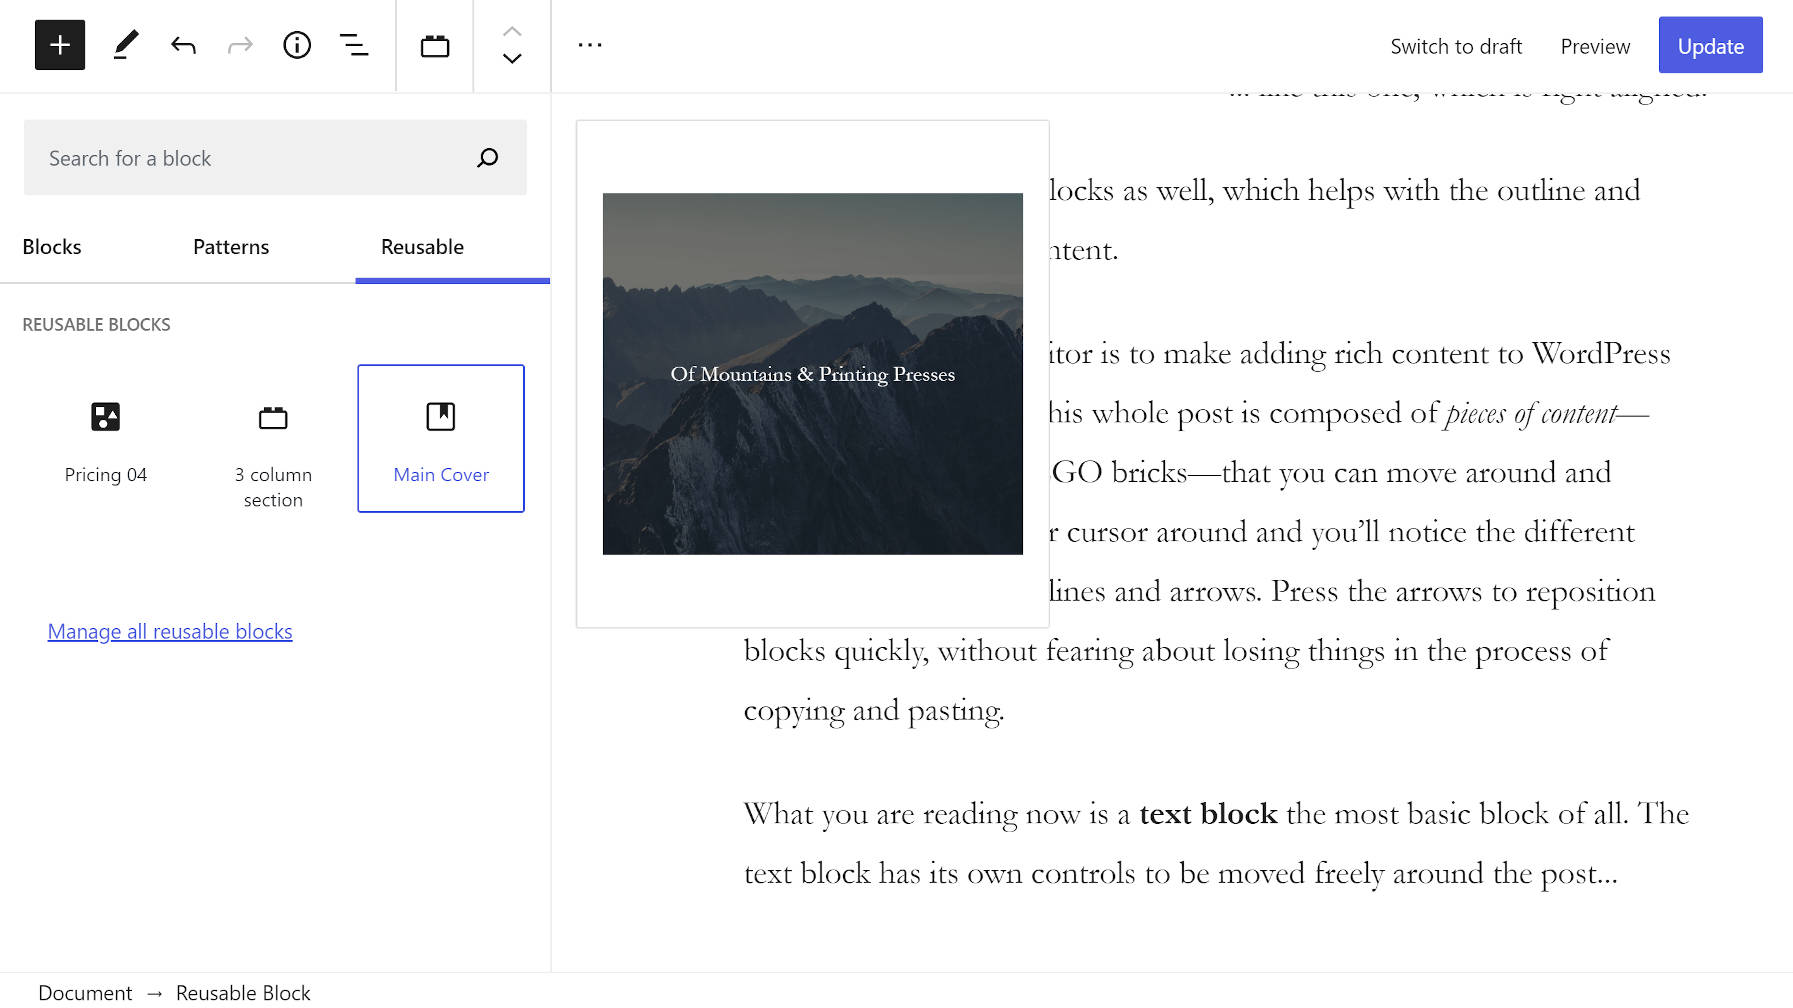 gutenberg-8-5-adds-single-gallery-image-editing-allows-image-uploads-from-external-sources-and-improves-drag-and-drop-3 Gutenberg 8.5 Adds Single Gallery Image Editing, Allows Image Uploads From External Sources, and Improves Drag and Drop